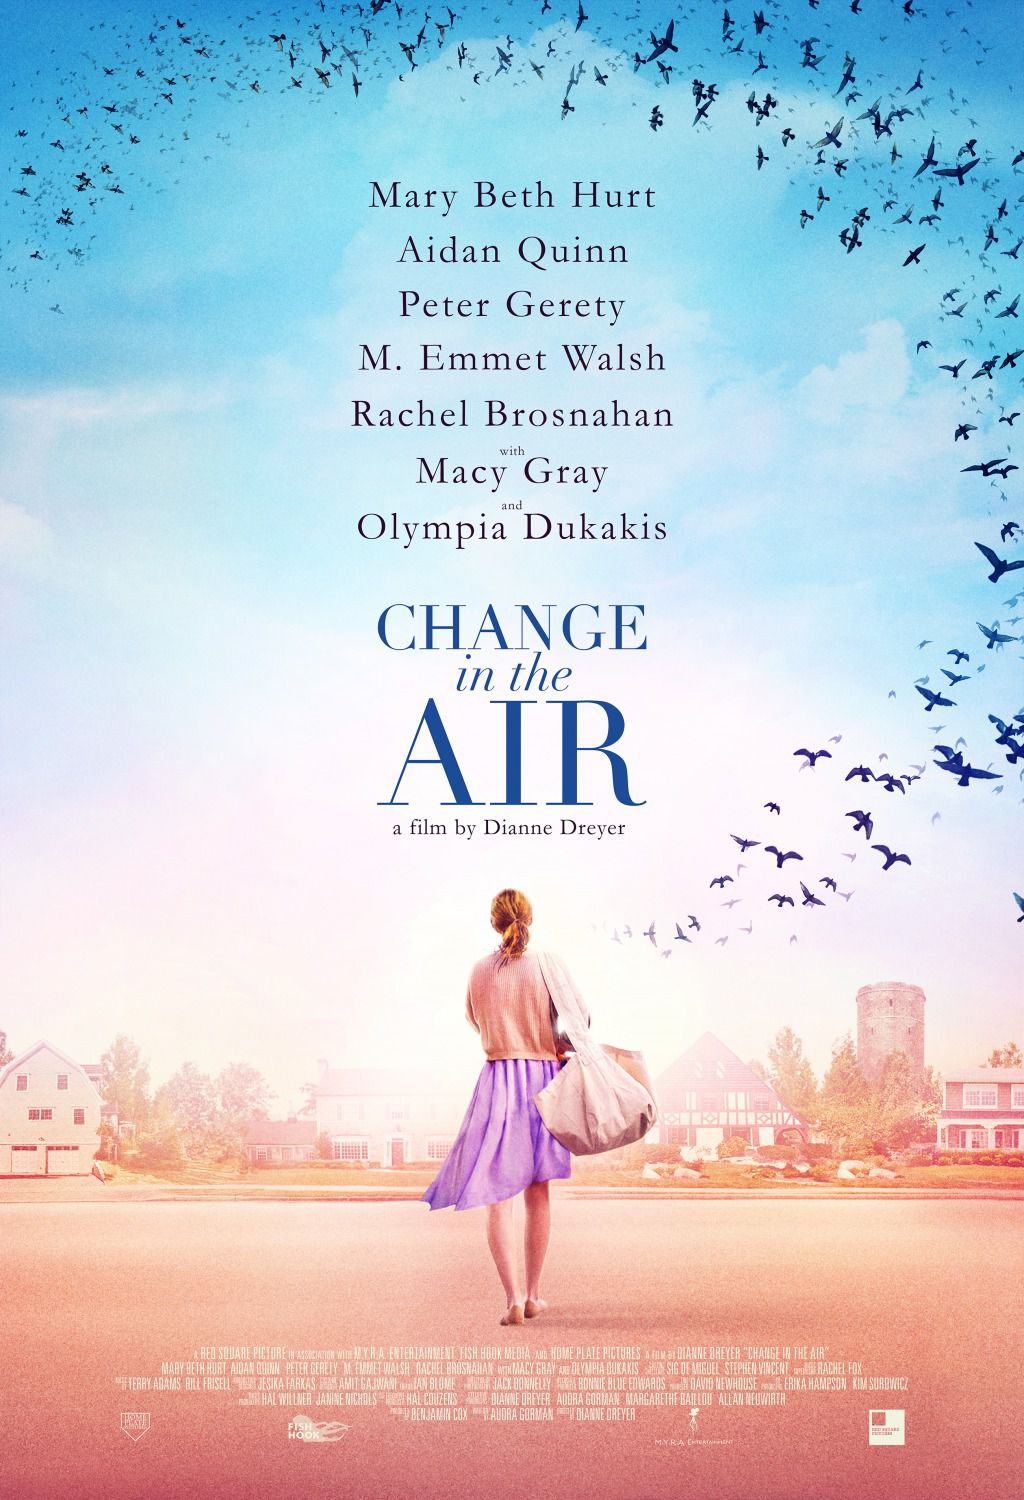 Change in the Air by Dianne Dreyer - Cast: Mary Beth Hurt, Aidan Quinn, Peter Gerety, M Emmet Walsh, Rachel Brosnahan, Macy Gray, Olympia Dukakis - film poster